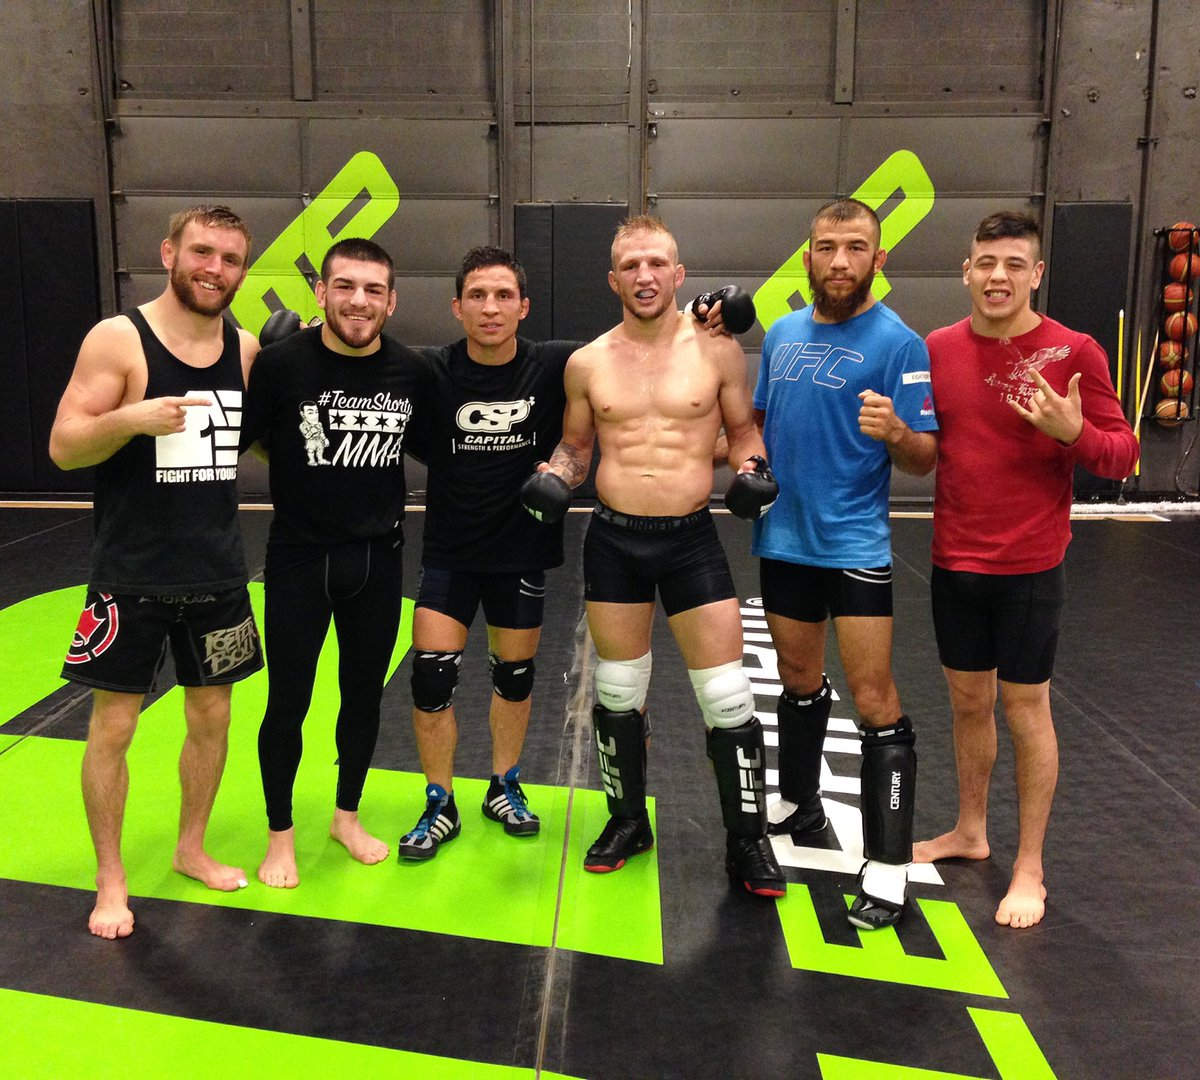 You'll never see a tougher group of small guys! @TElliott125 @JoeJitsu @TJDillashaw @jarch141 @theassassinbaby and myself! #MyFaceHurts https://t.co/JLgYEJCMbf